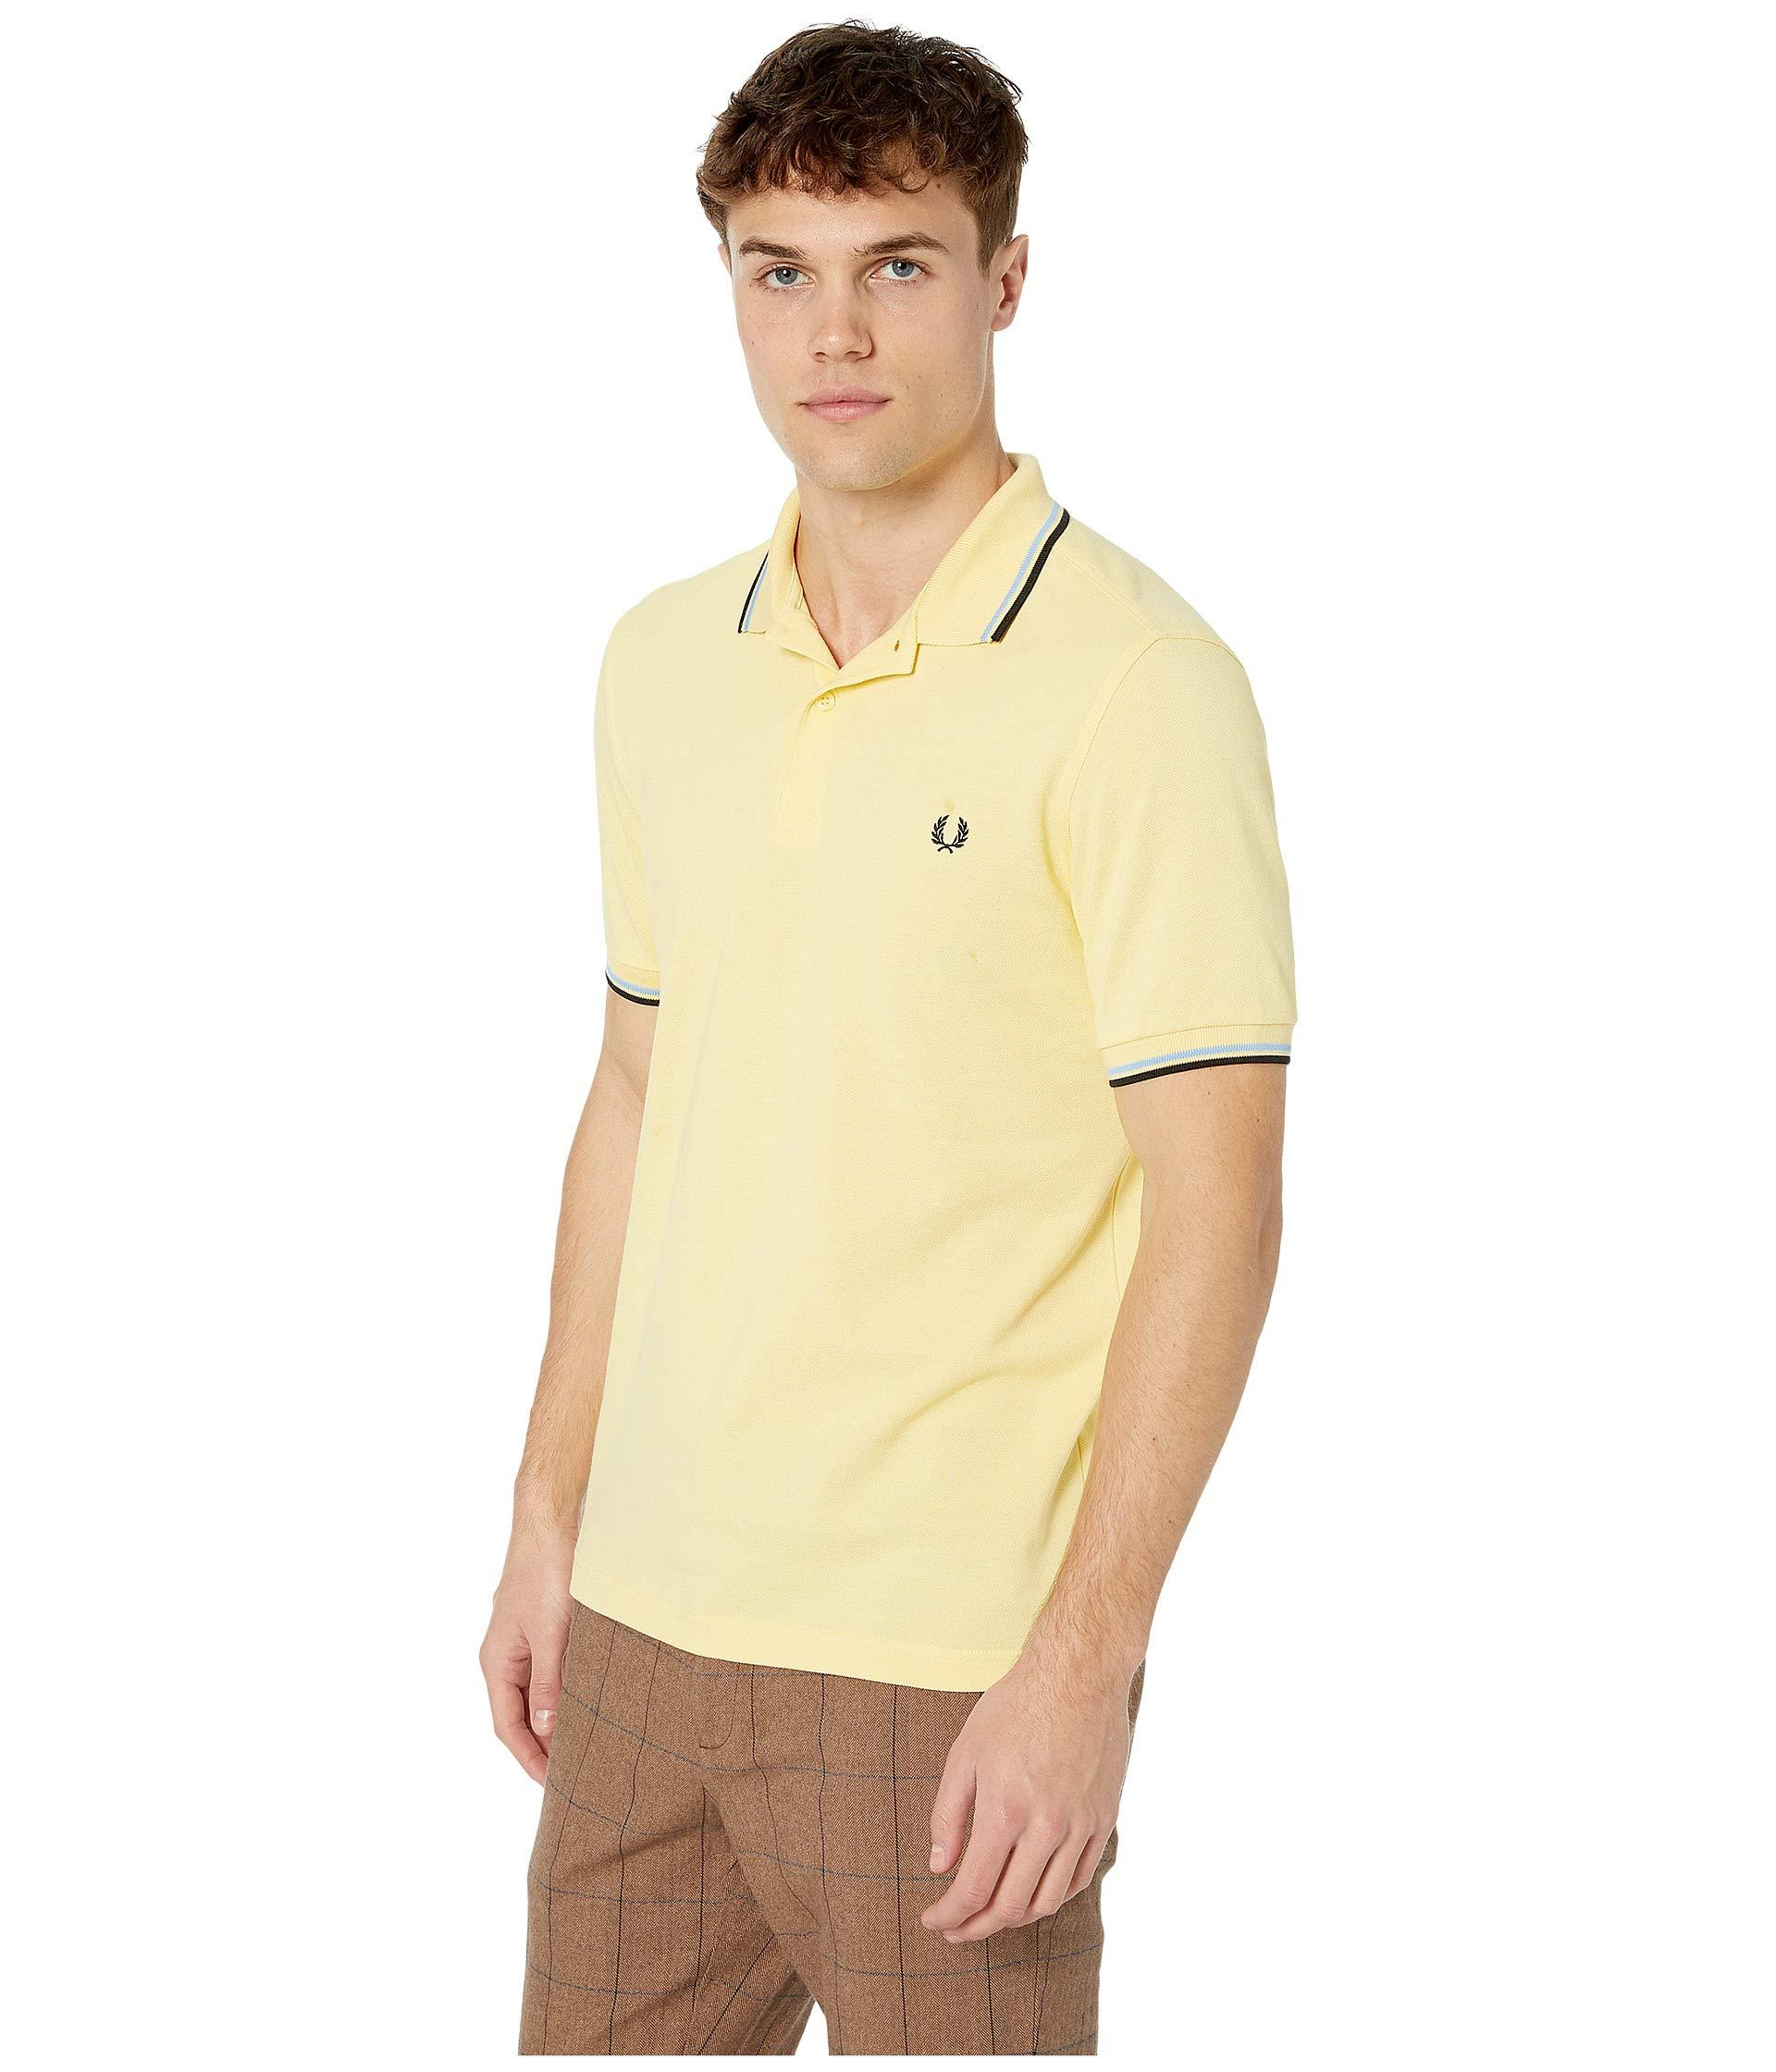 934ec51478 Lyst - Fred Perry Twin Tipped Shirt (navy white white) Men s Short Sleeve  Knit in Yellow for Men